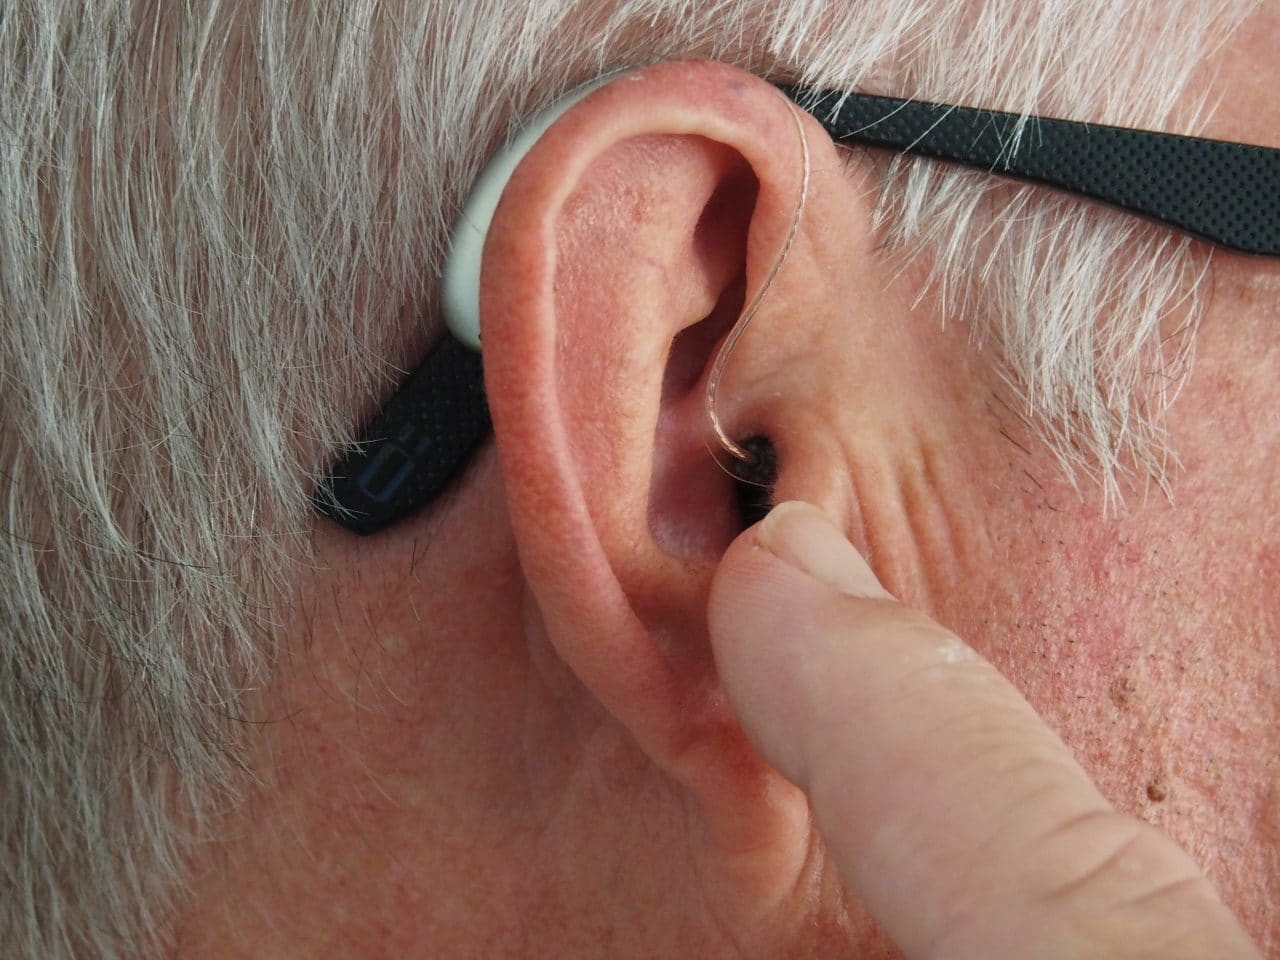 Man points at his hearing aid.